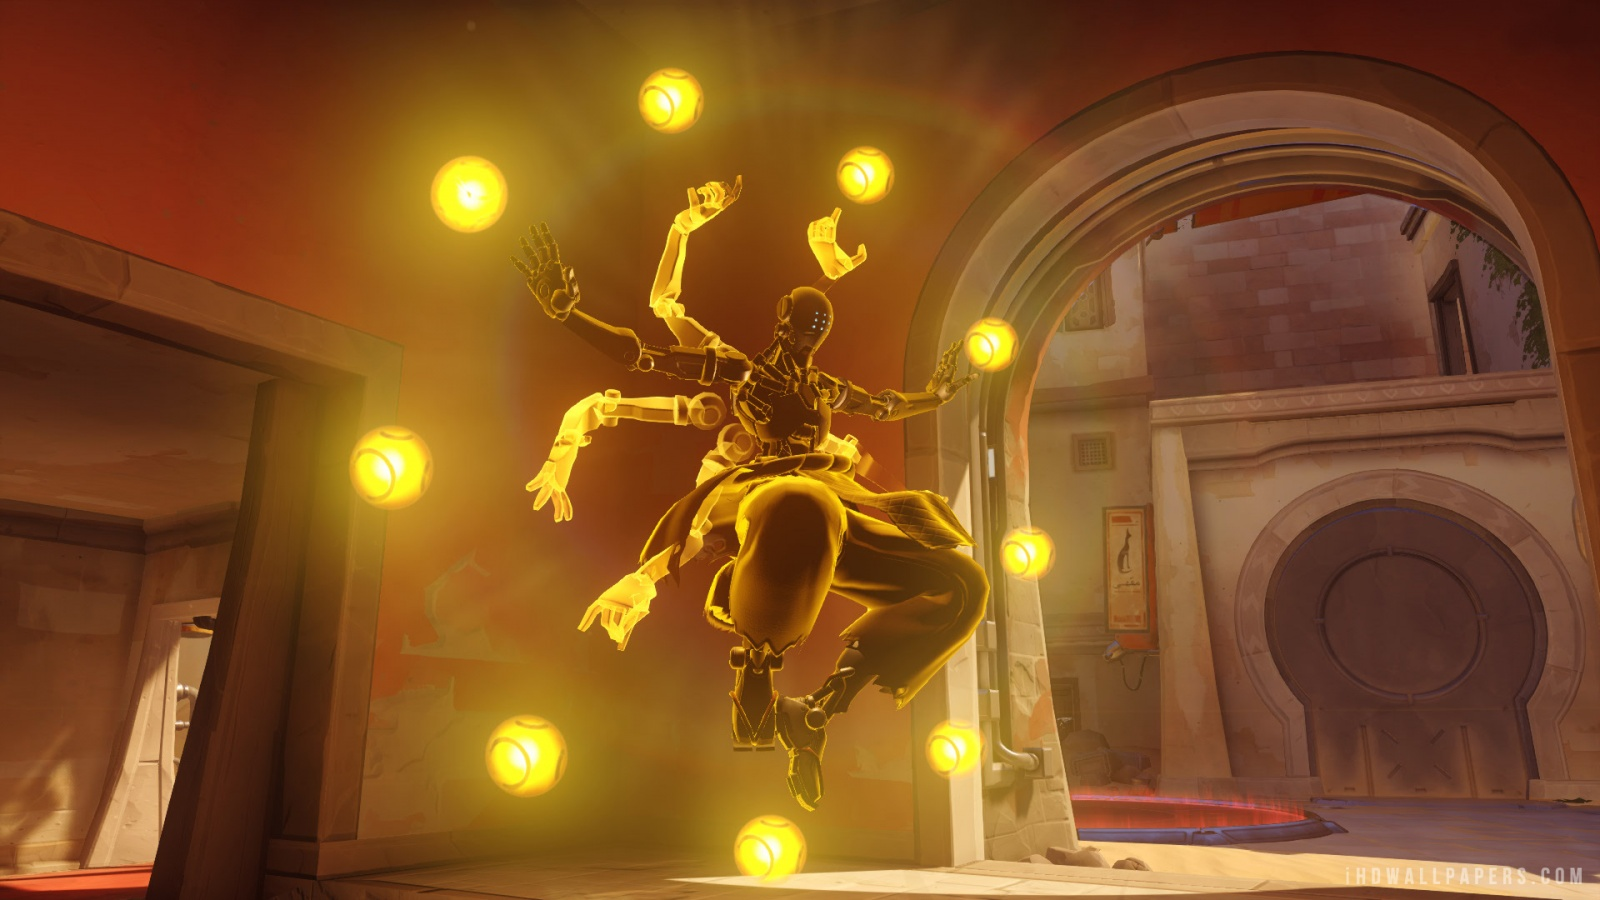 Zenyatta Overwatch HD Wallpaper   iHD Wallpapers 1600x900